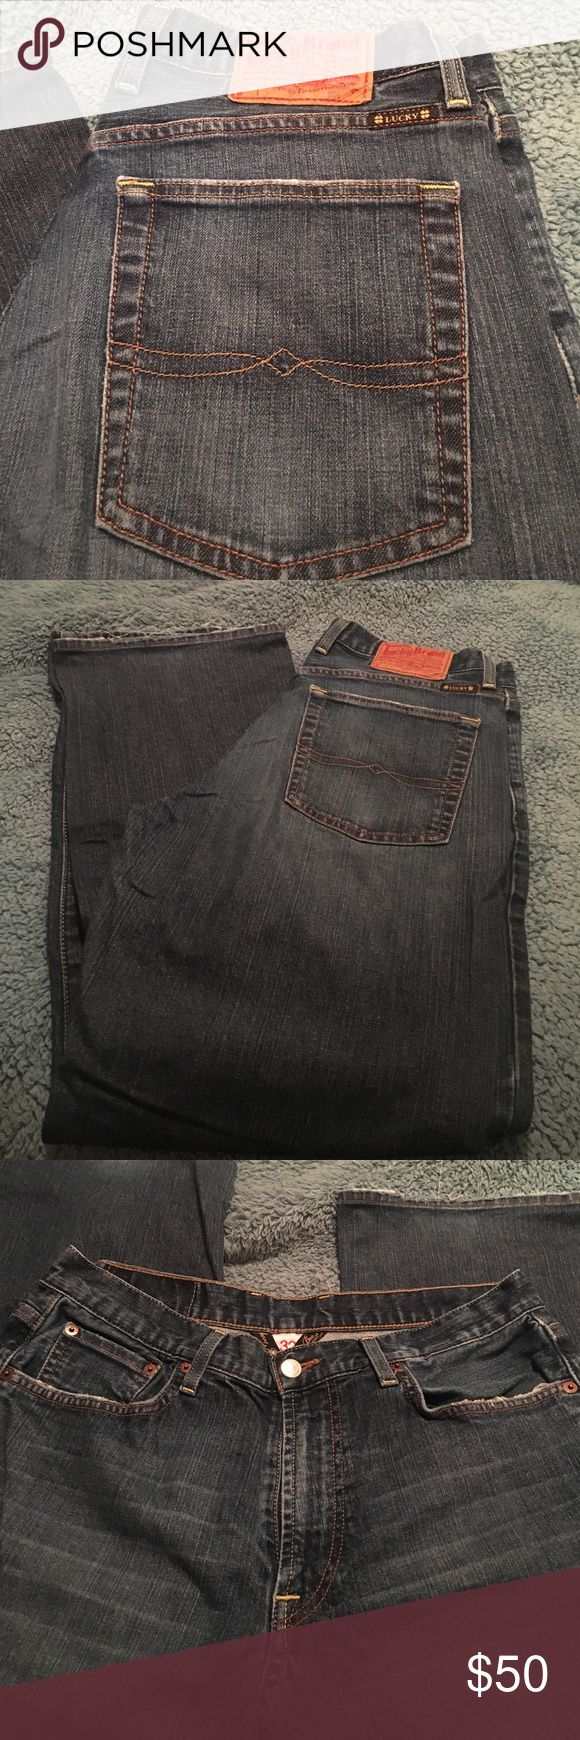 Lucky brand men's jeans Classic fit dungarees size 32Short, excellent condition Lucky Brand Jeans